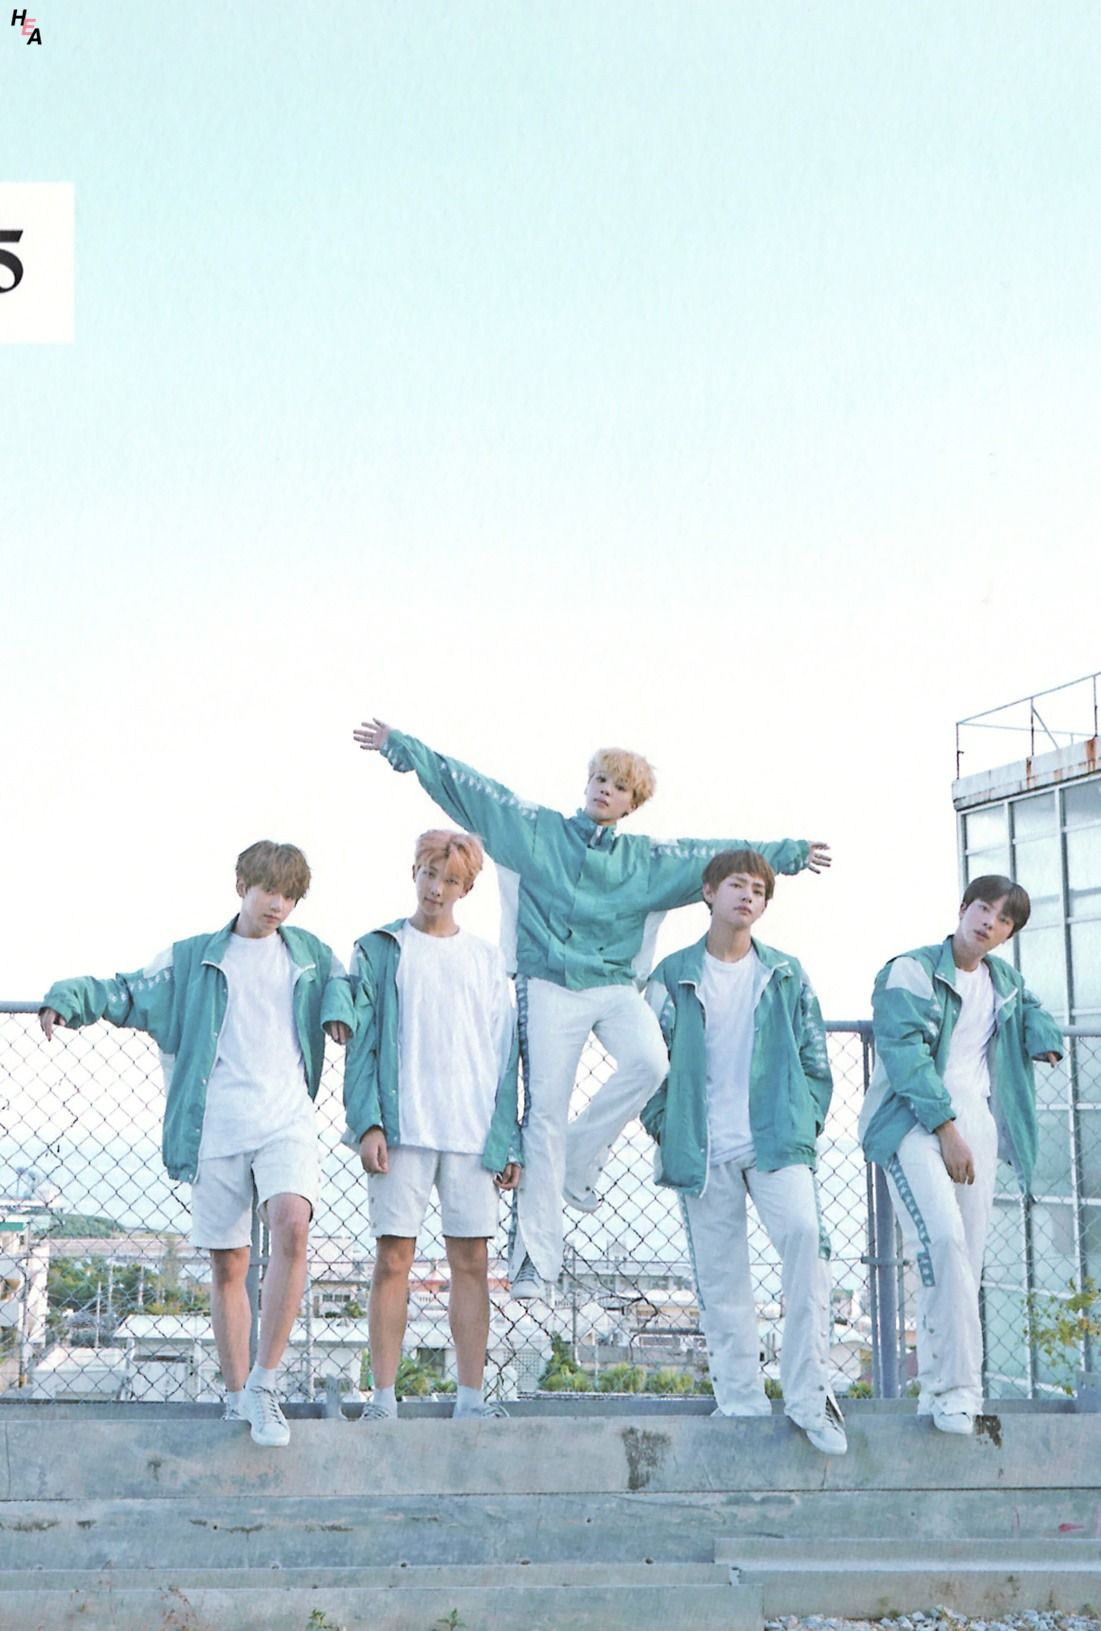 Scan Bts 2018 Season Greetings Happily Ever After Bts